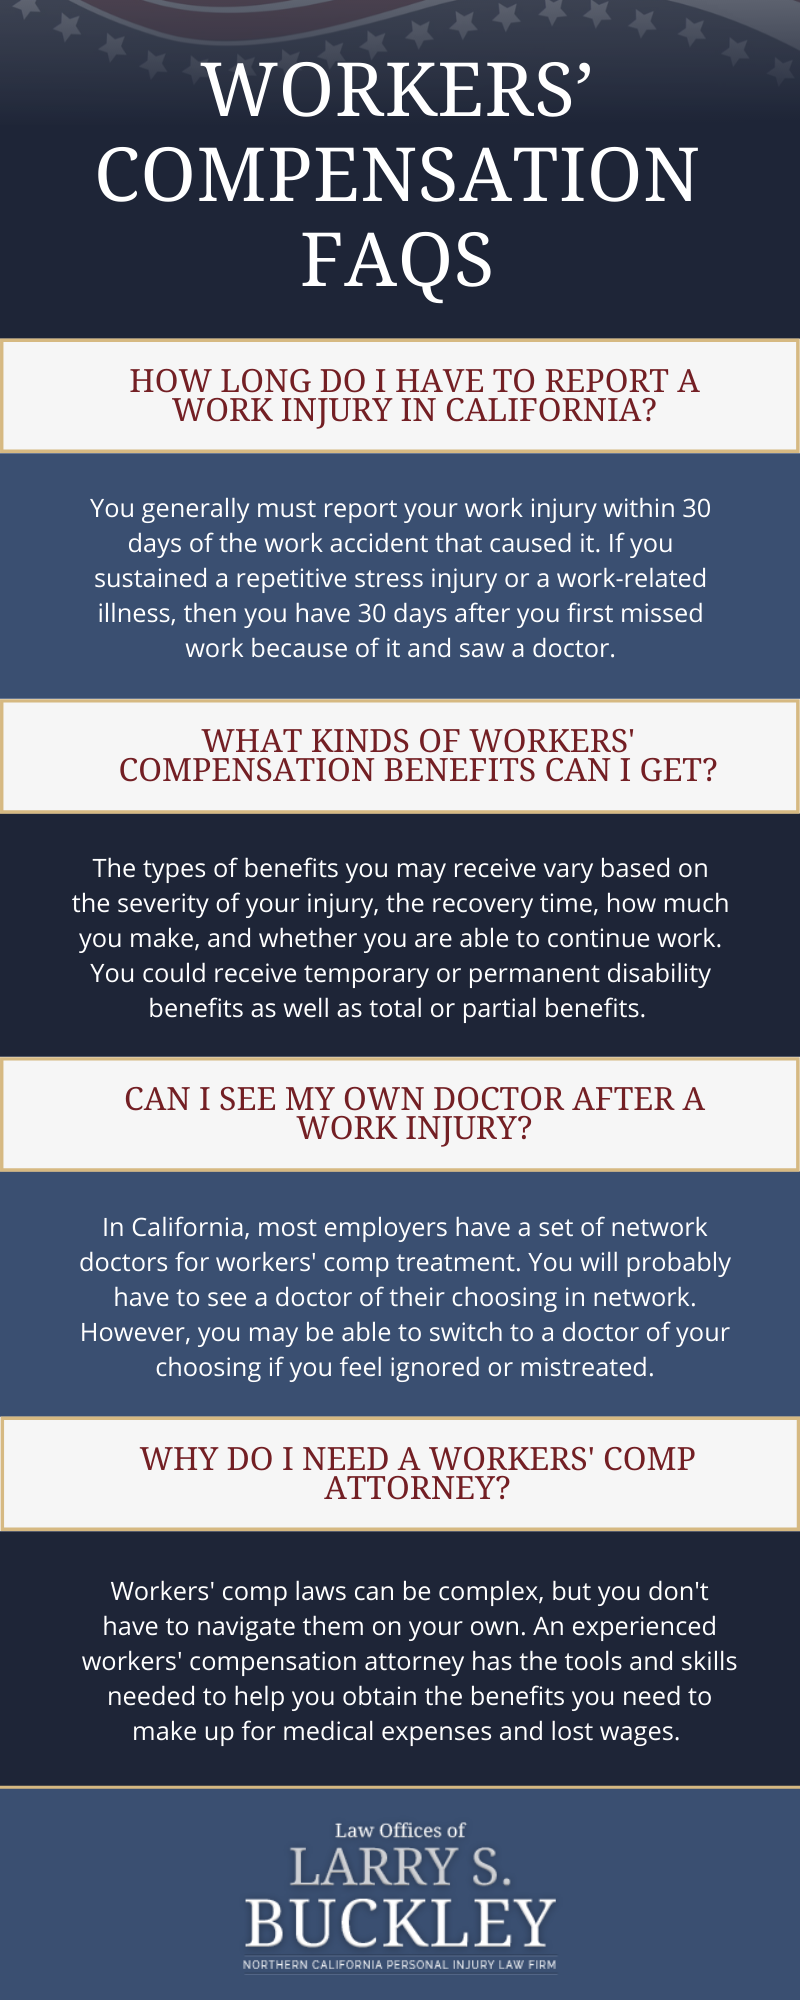 workers' compensation FAQs infographic